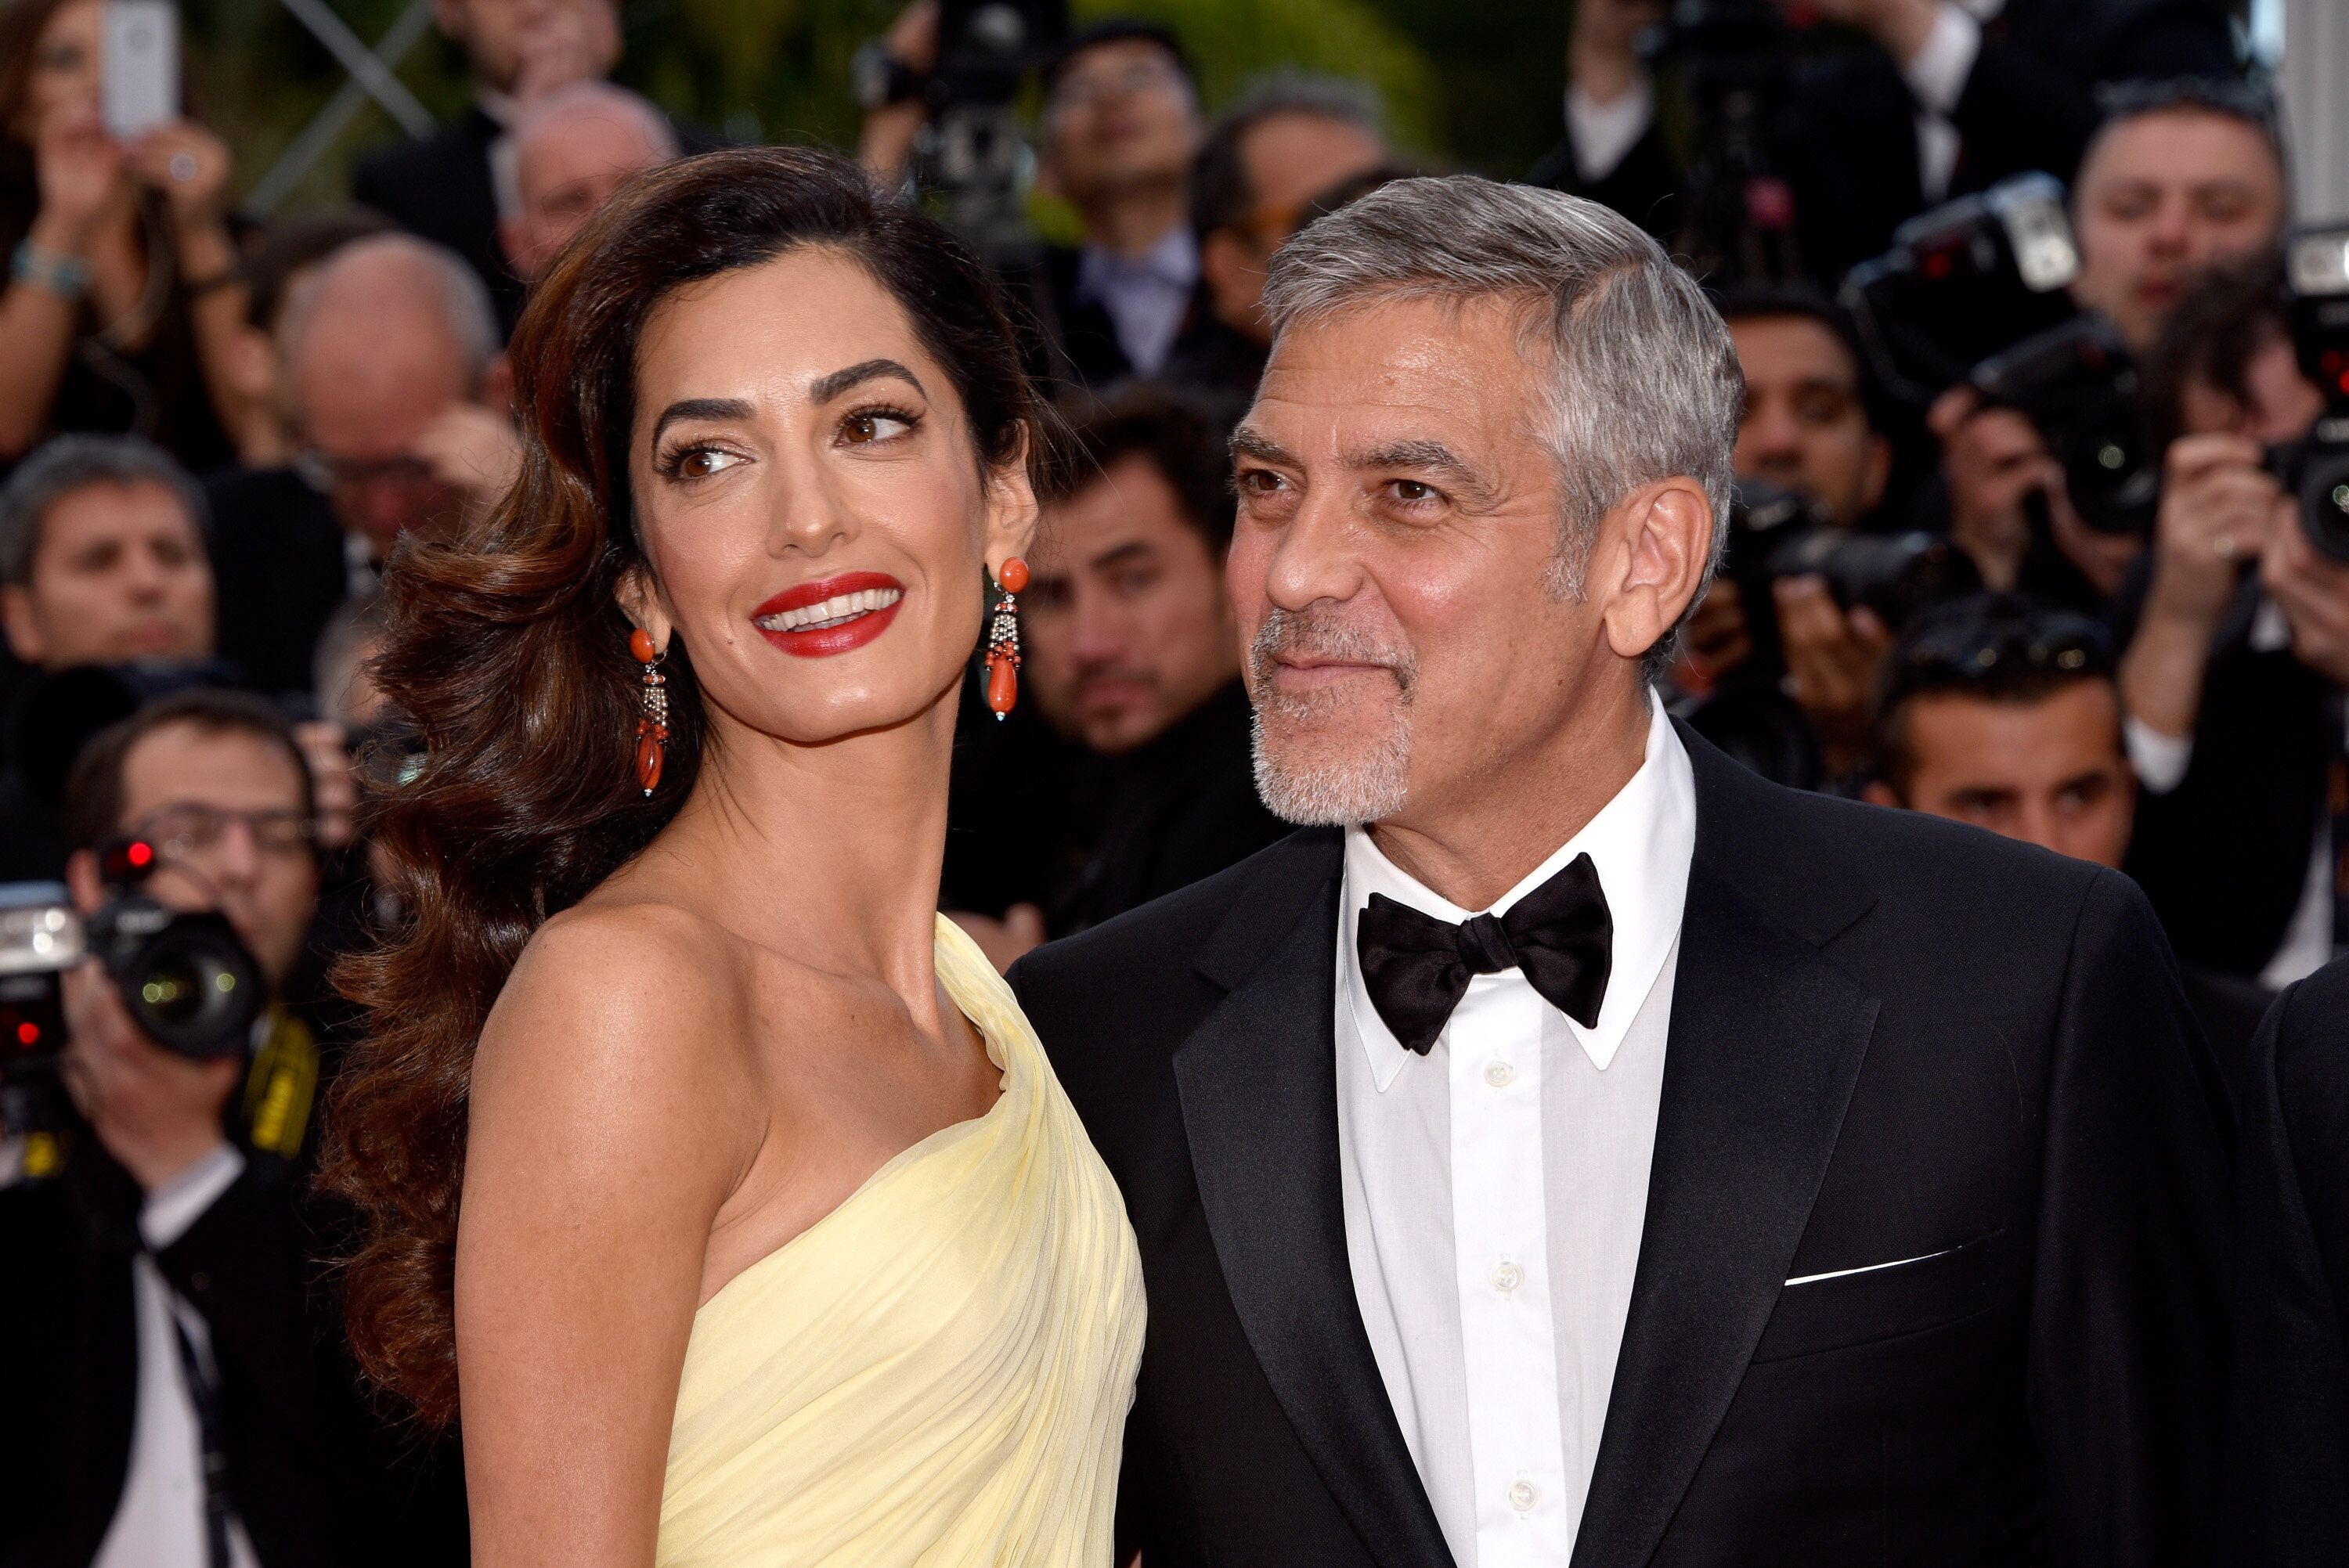 """George and Amal Clooney attend the """"Money Monster"""" premiere during the 69th annual Cannes Film Festival on May 12, 2016.&nbsp"""